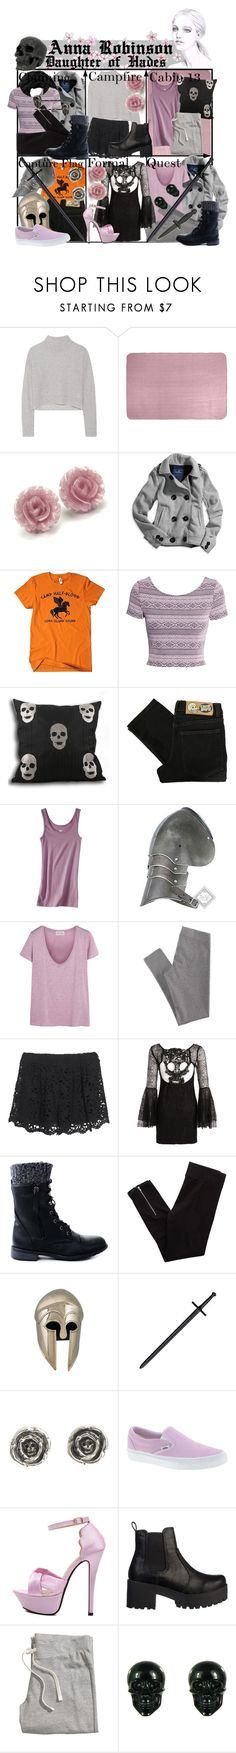 """Requested by genxpen: Anna Robinson Daughter of Hades ~ Wardrobe"" by liesle ❤ liked on Polyvore featuring Line, American Eagle Outfitters, Subtle Luxury, H&M, Cheap Monday, Mossimo, DC Shoes, American Vintage, Nightcap and Aerie"